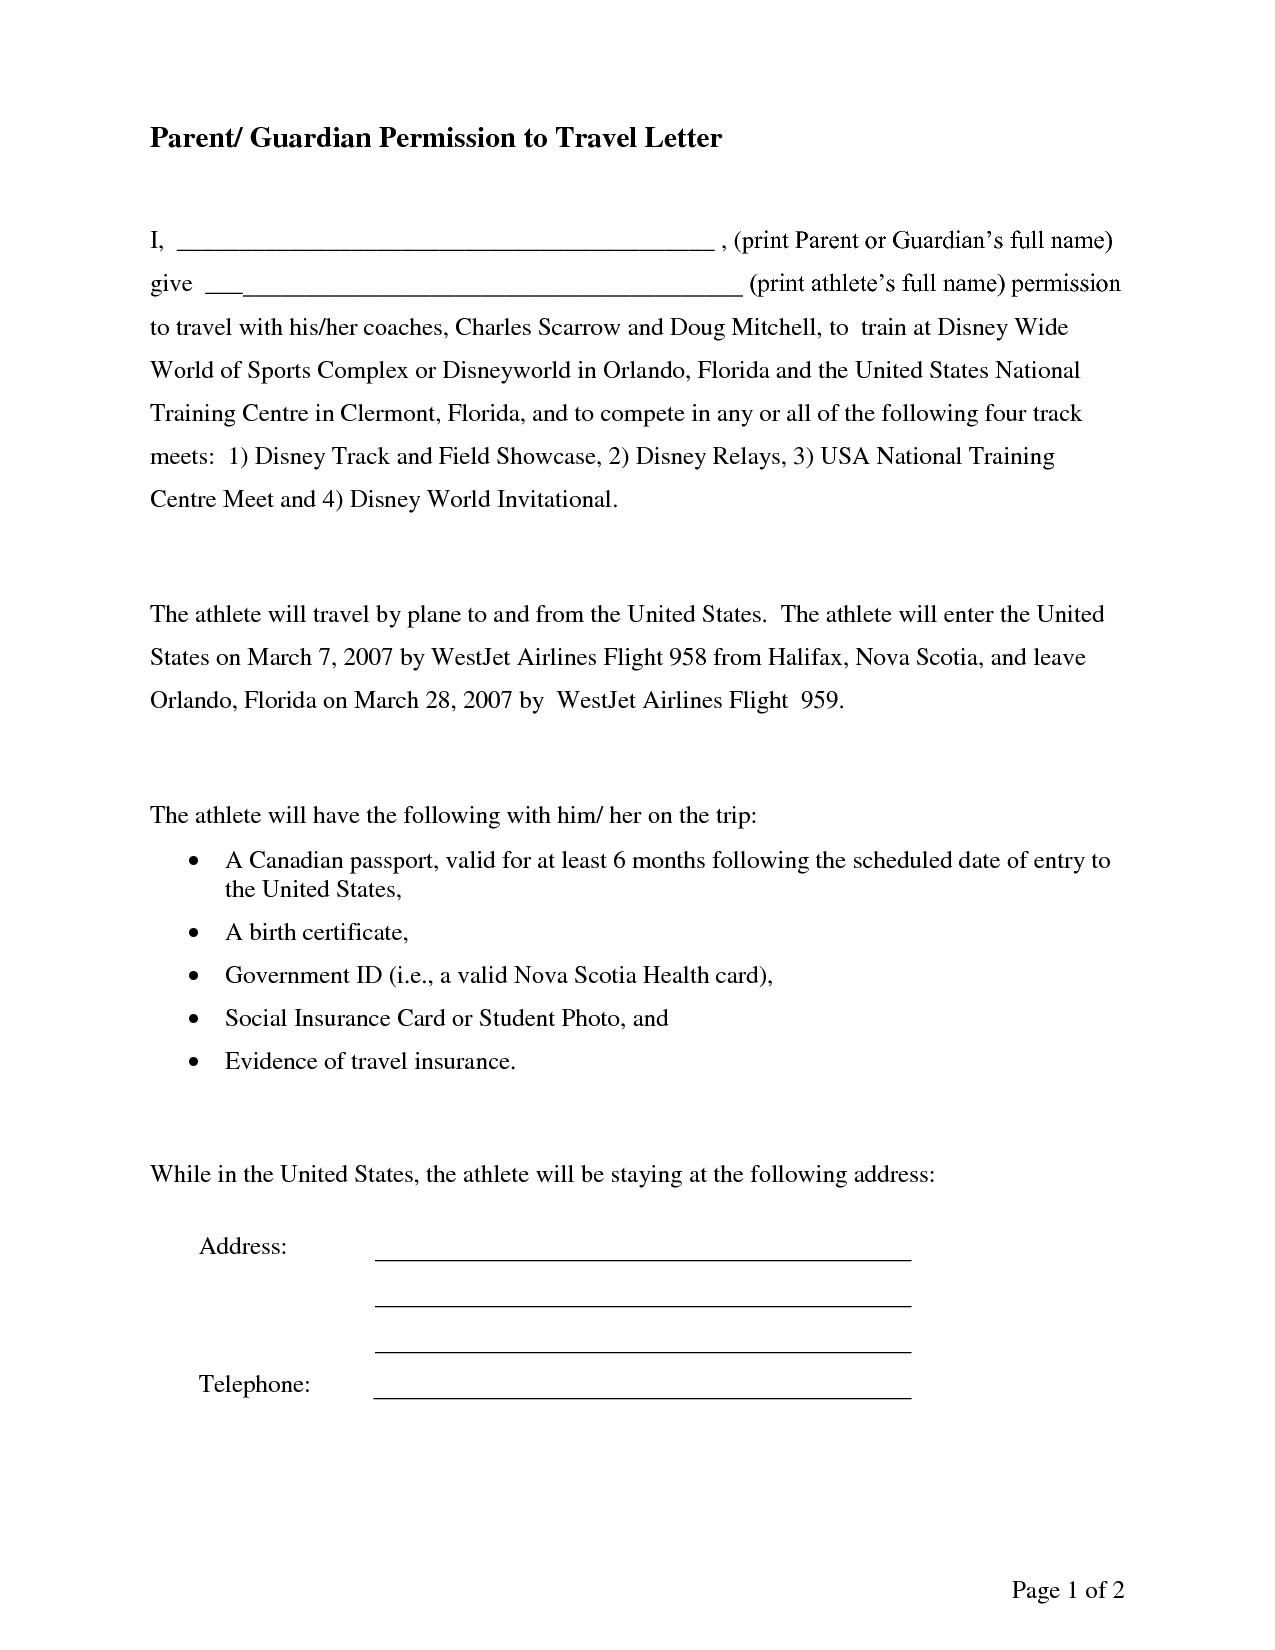 Free Temporary Guardianship Letter Template - 31 Elegant Sample Guardianship Letter